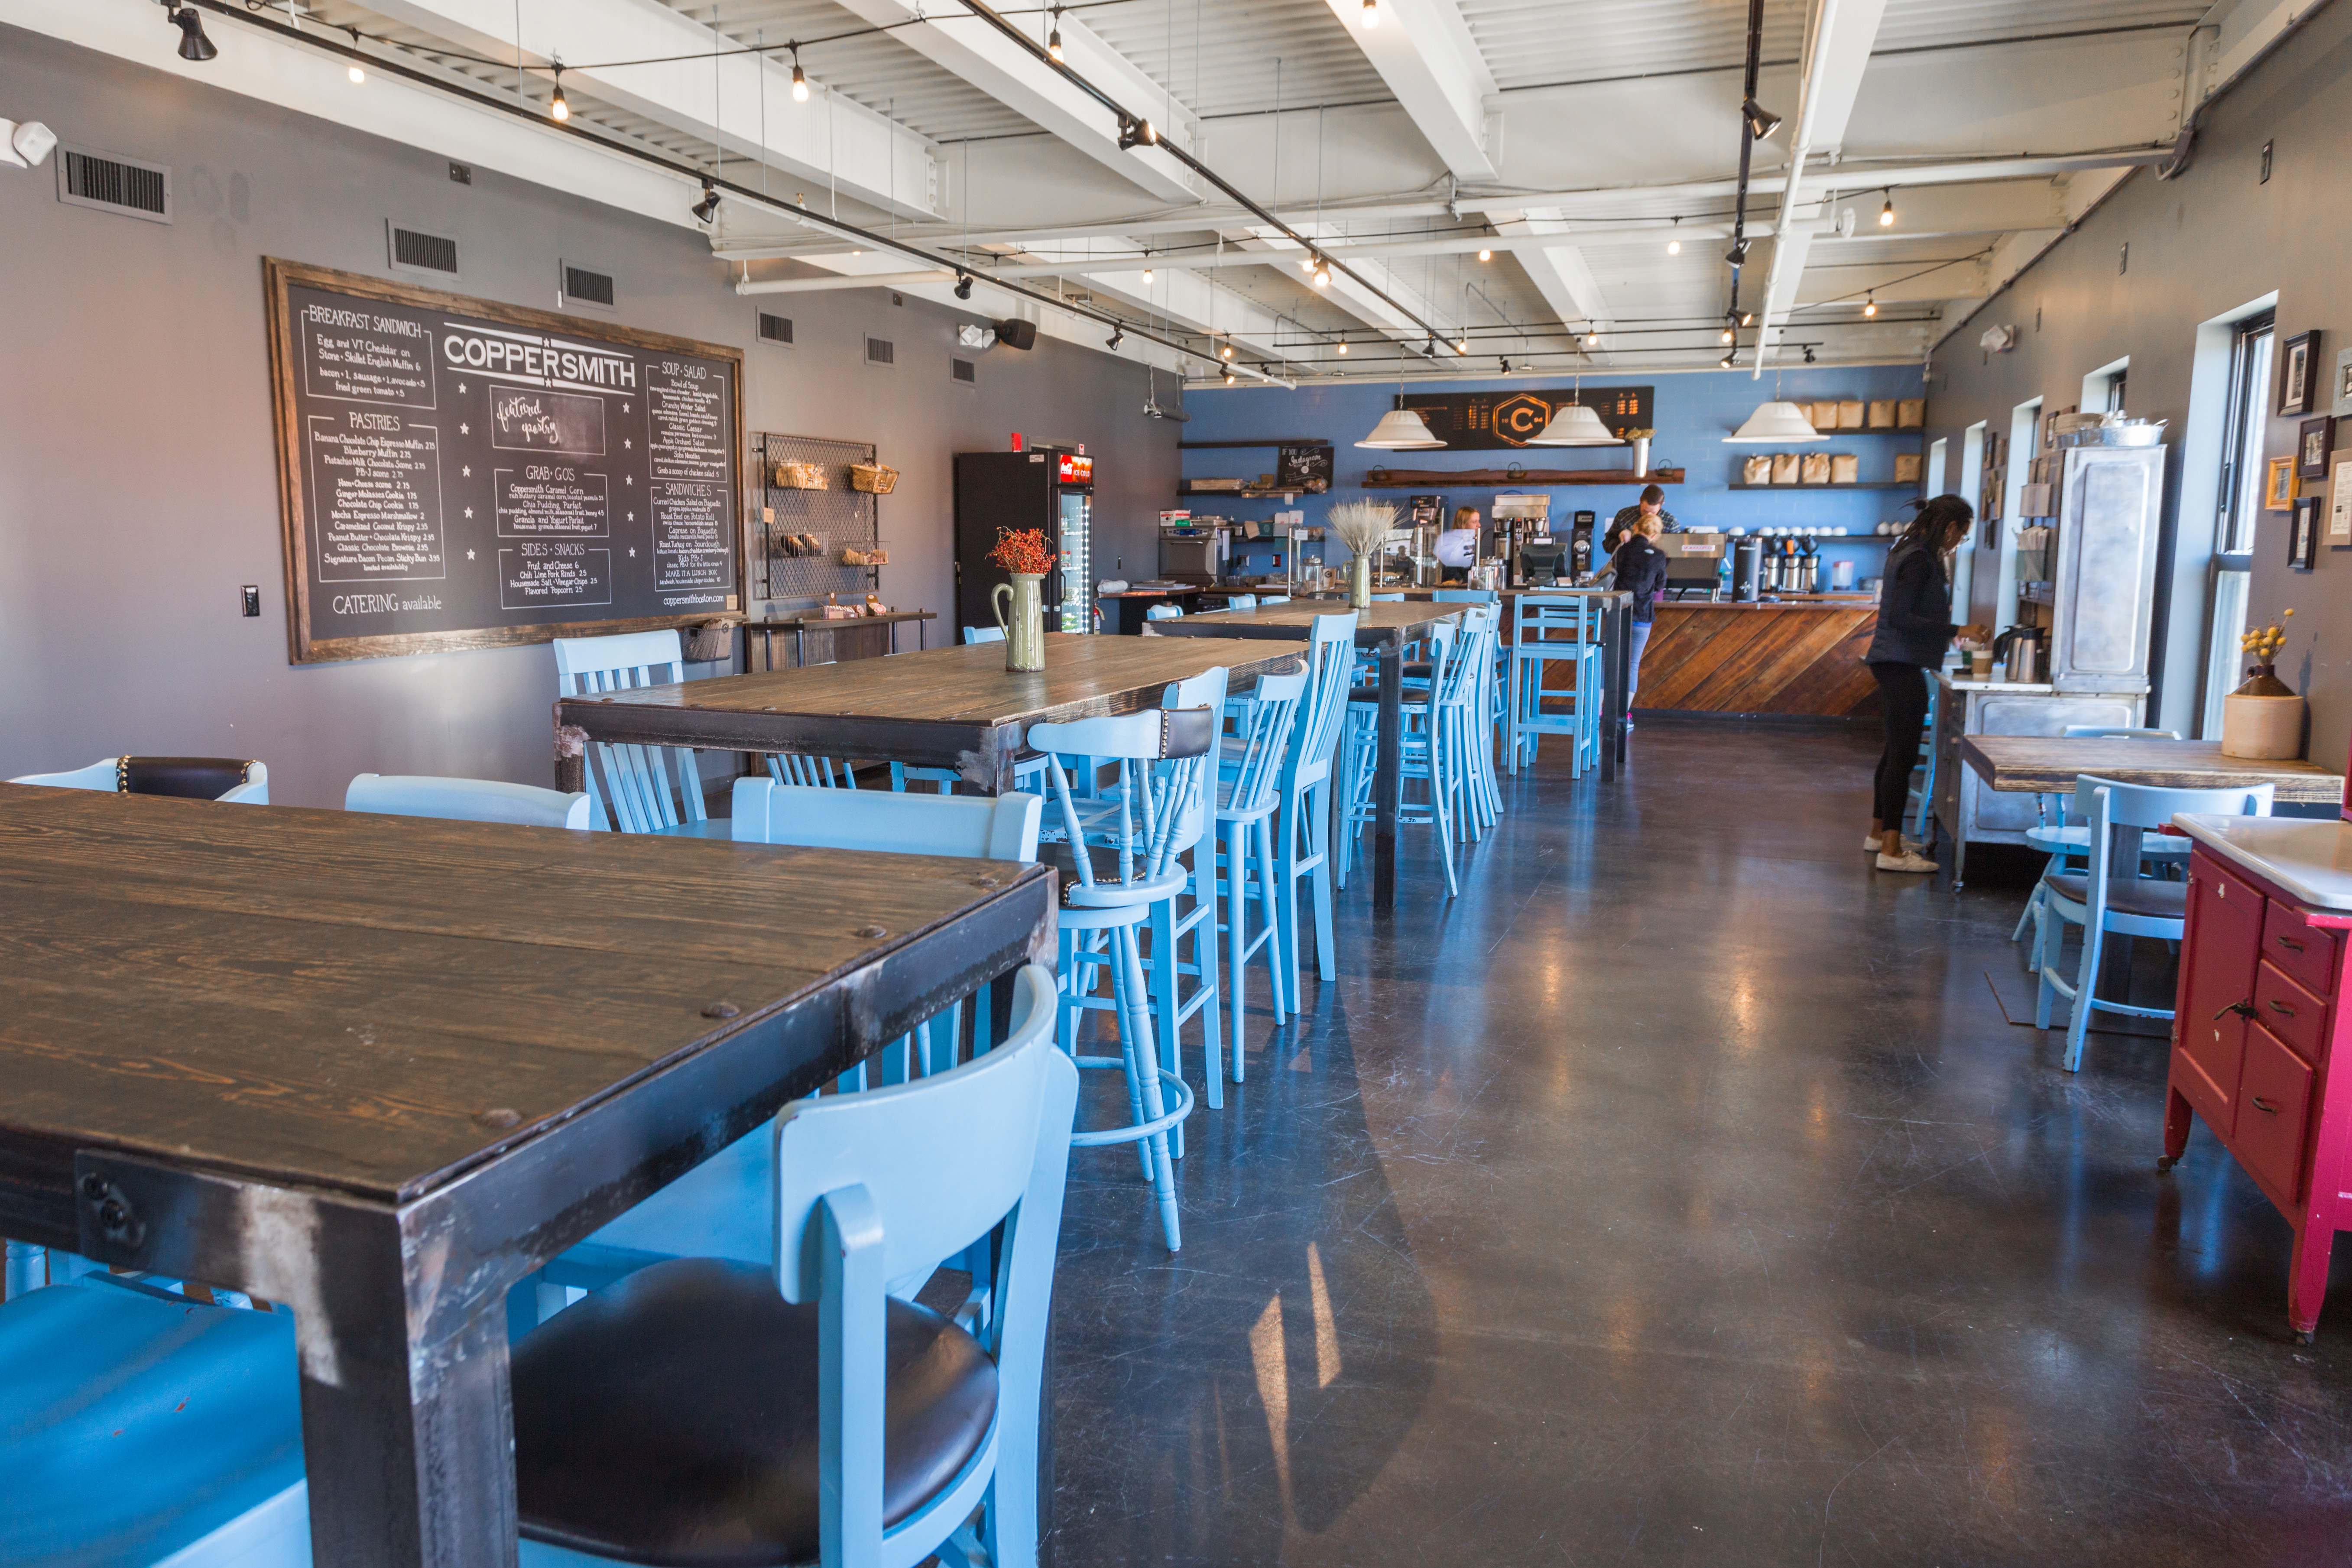 Glass garage doors restaurant -  Atrium Skylights Open Windows And Glass Garage Doors That Together Impart A Bright Sense Of Comfort And Warmth Against Coppersmith S Industrial Feel